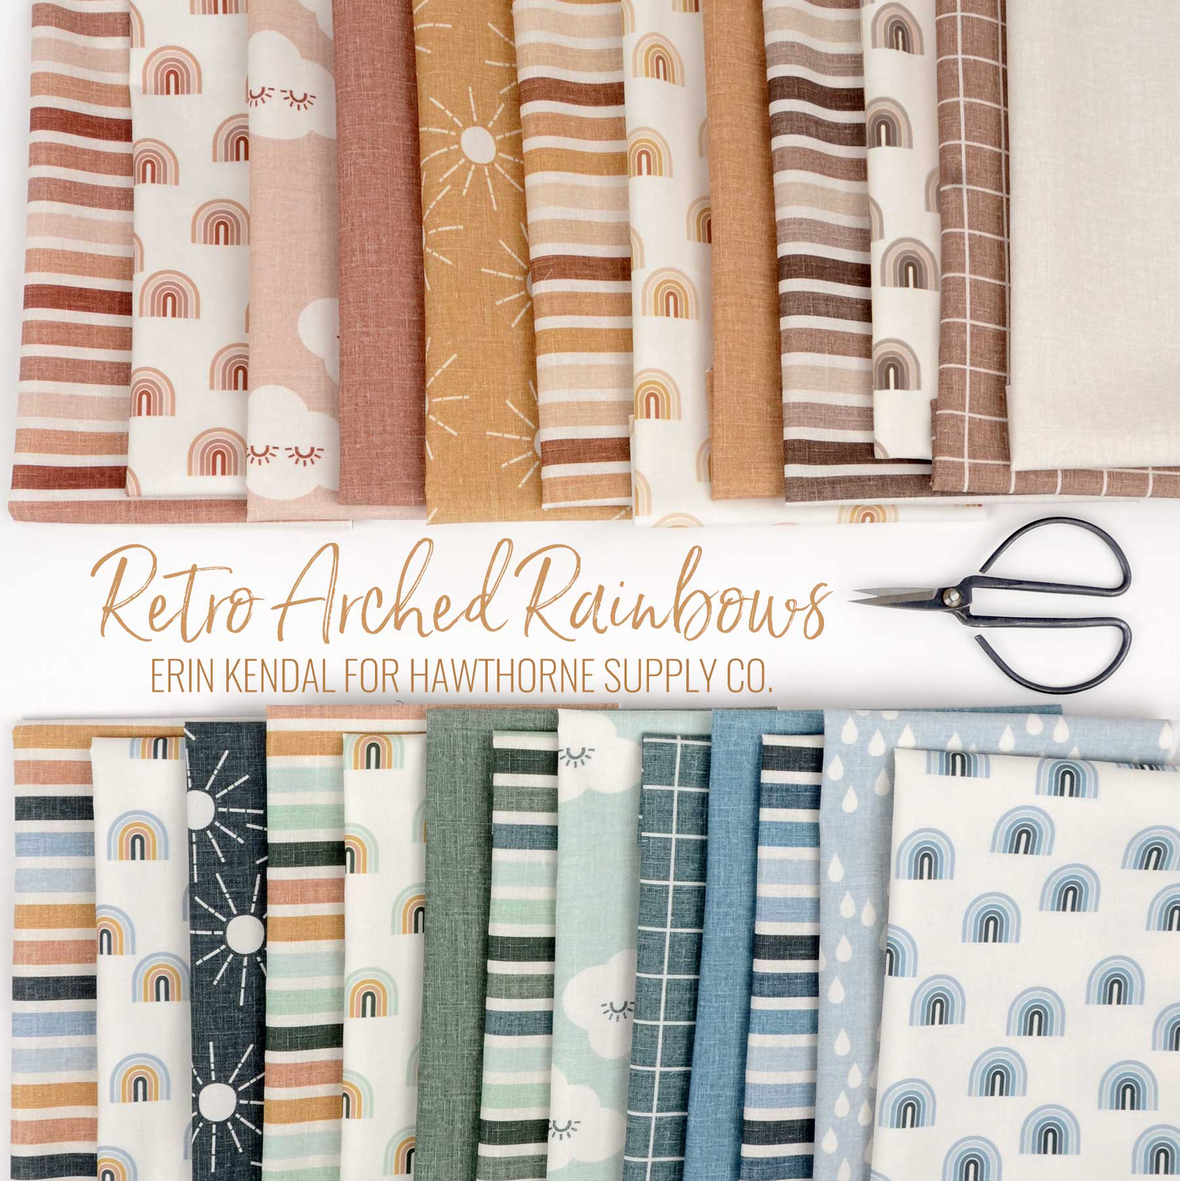 Retro-Arched-Rainbows-fabric-Erin-Kendal-for-Hawthorne-Supply-Co 2